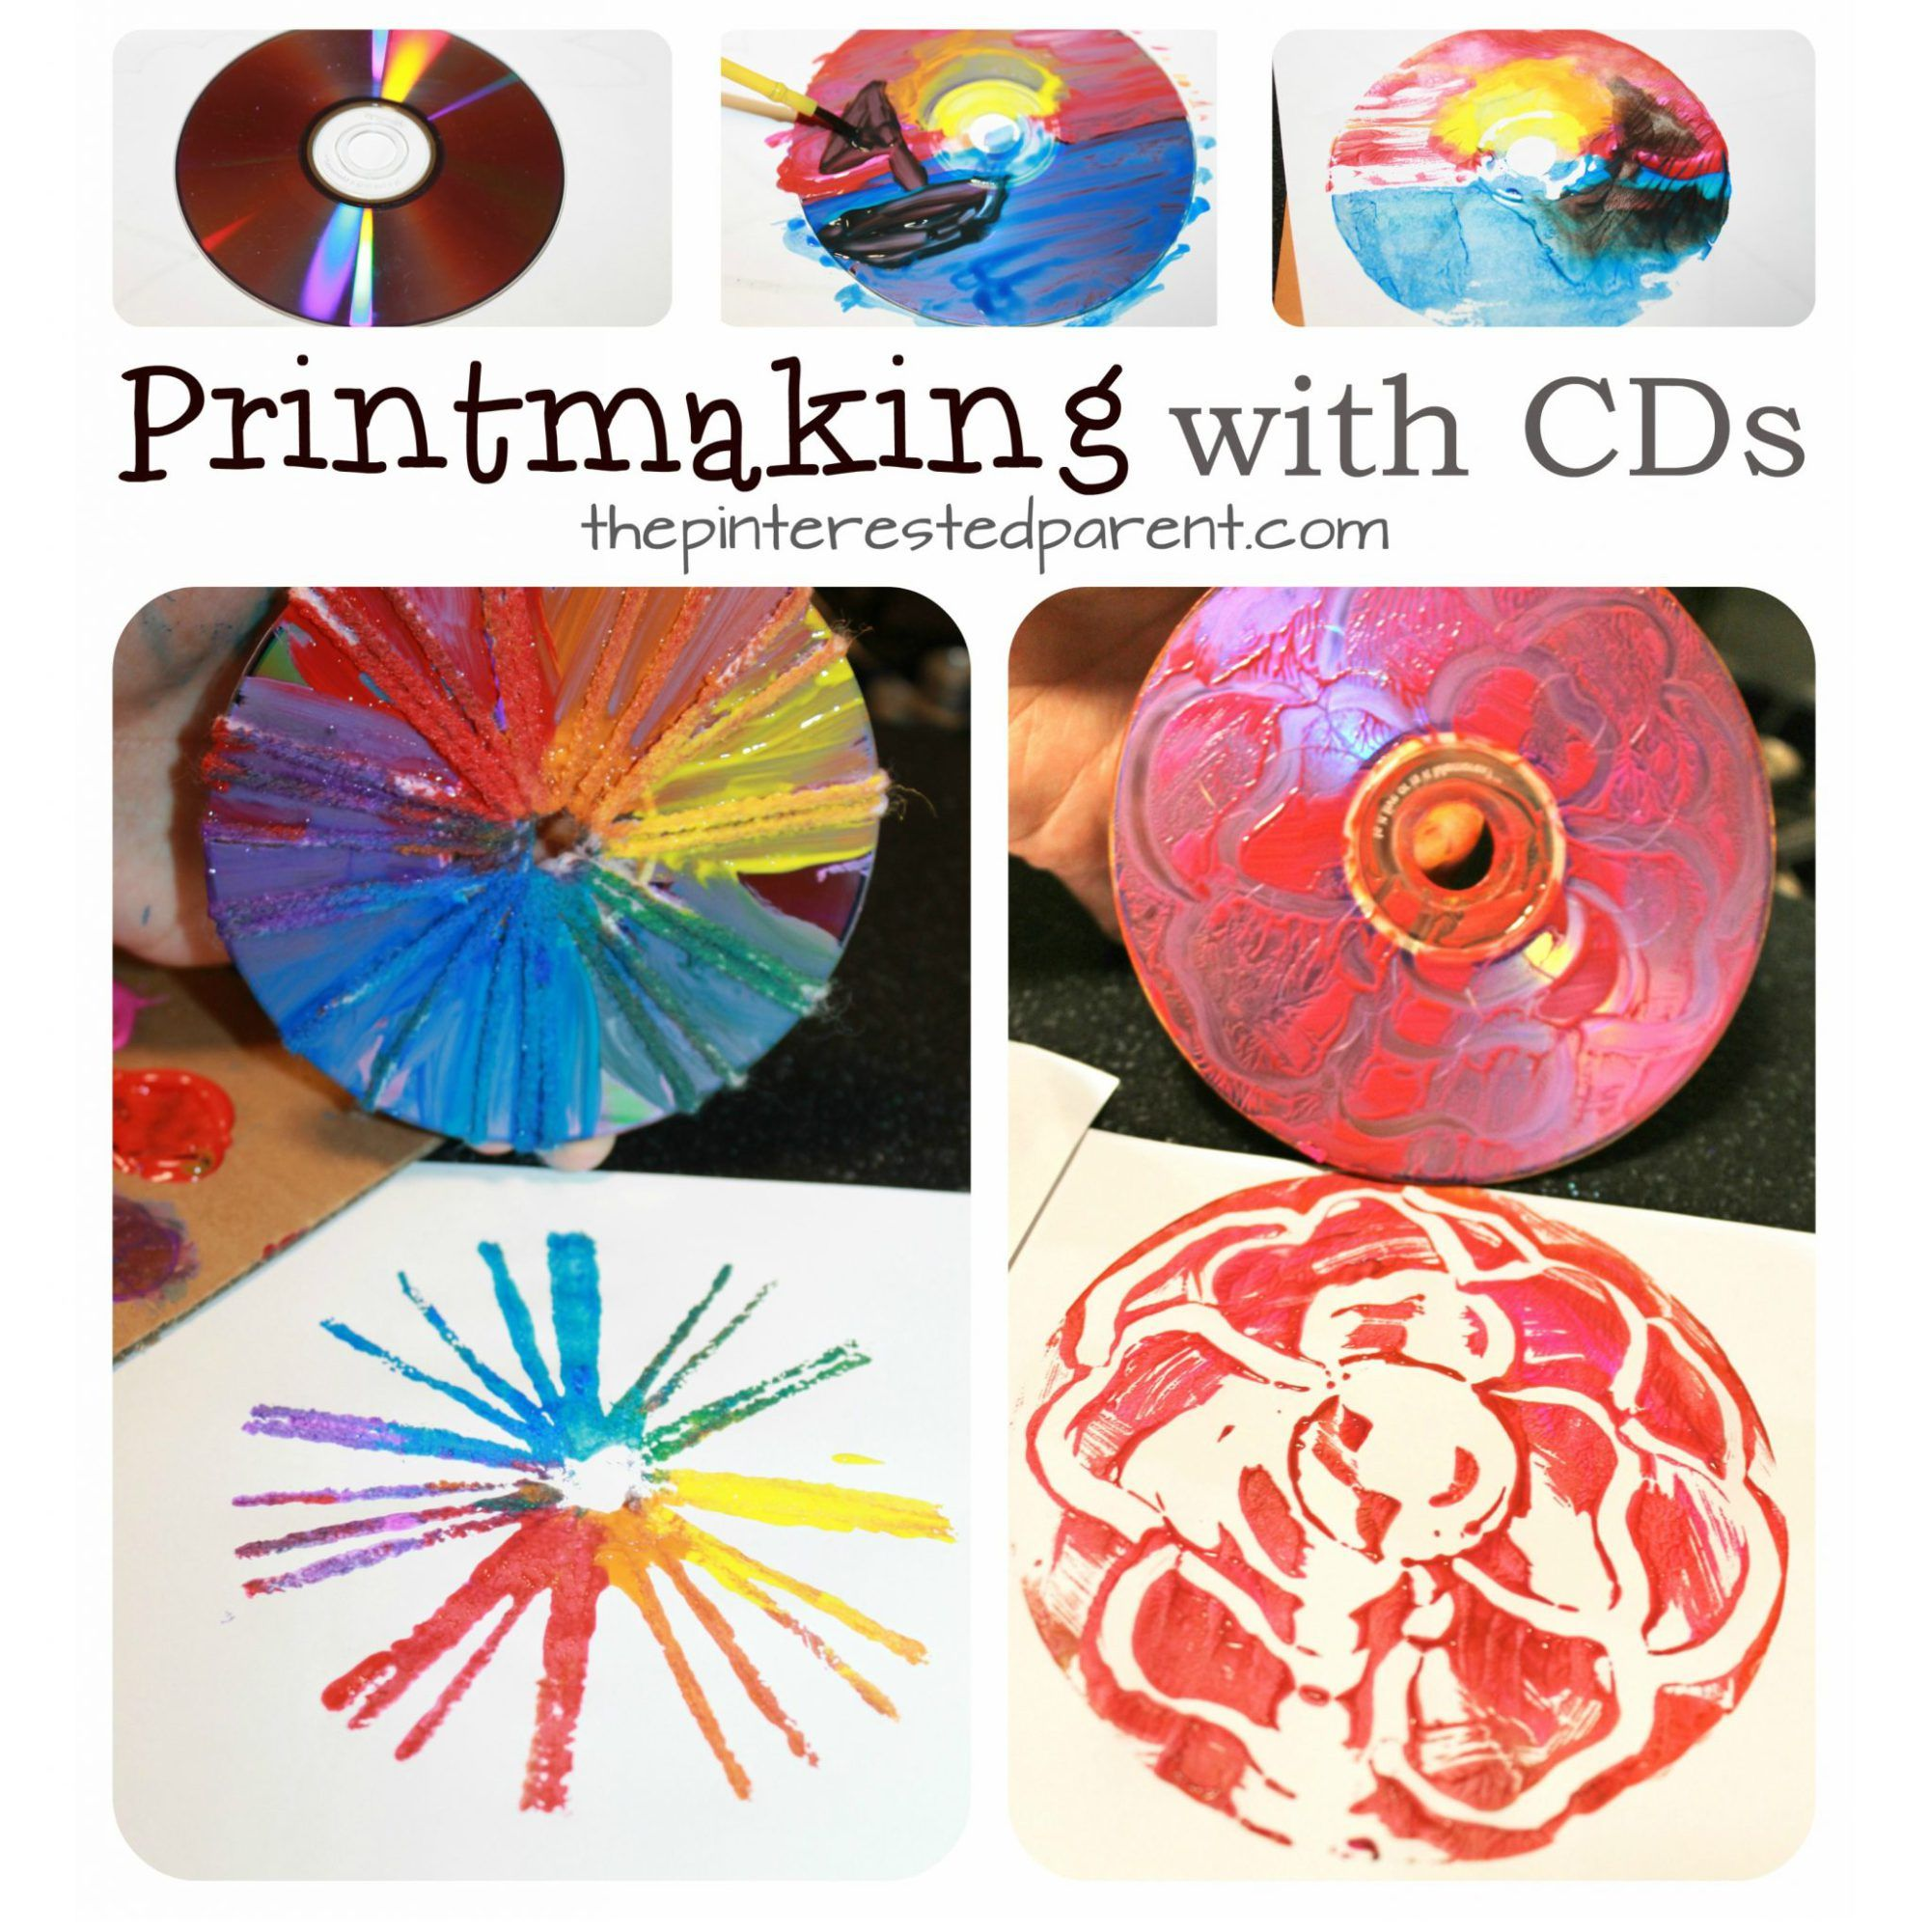 Cd printmaking techniques using paint , yarn, Q-tips and paint. Arts and